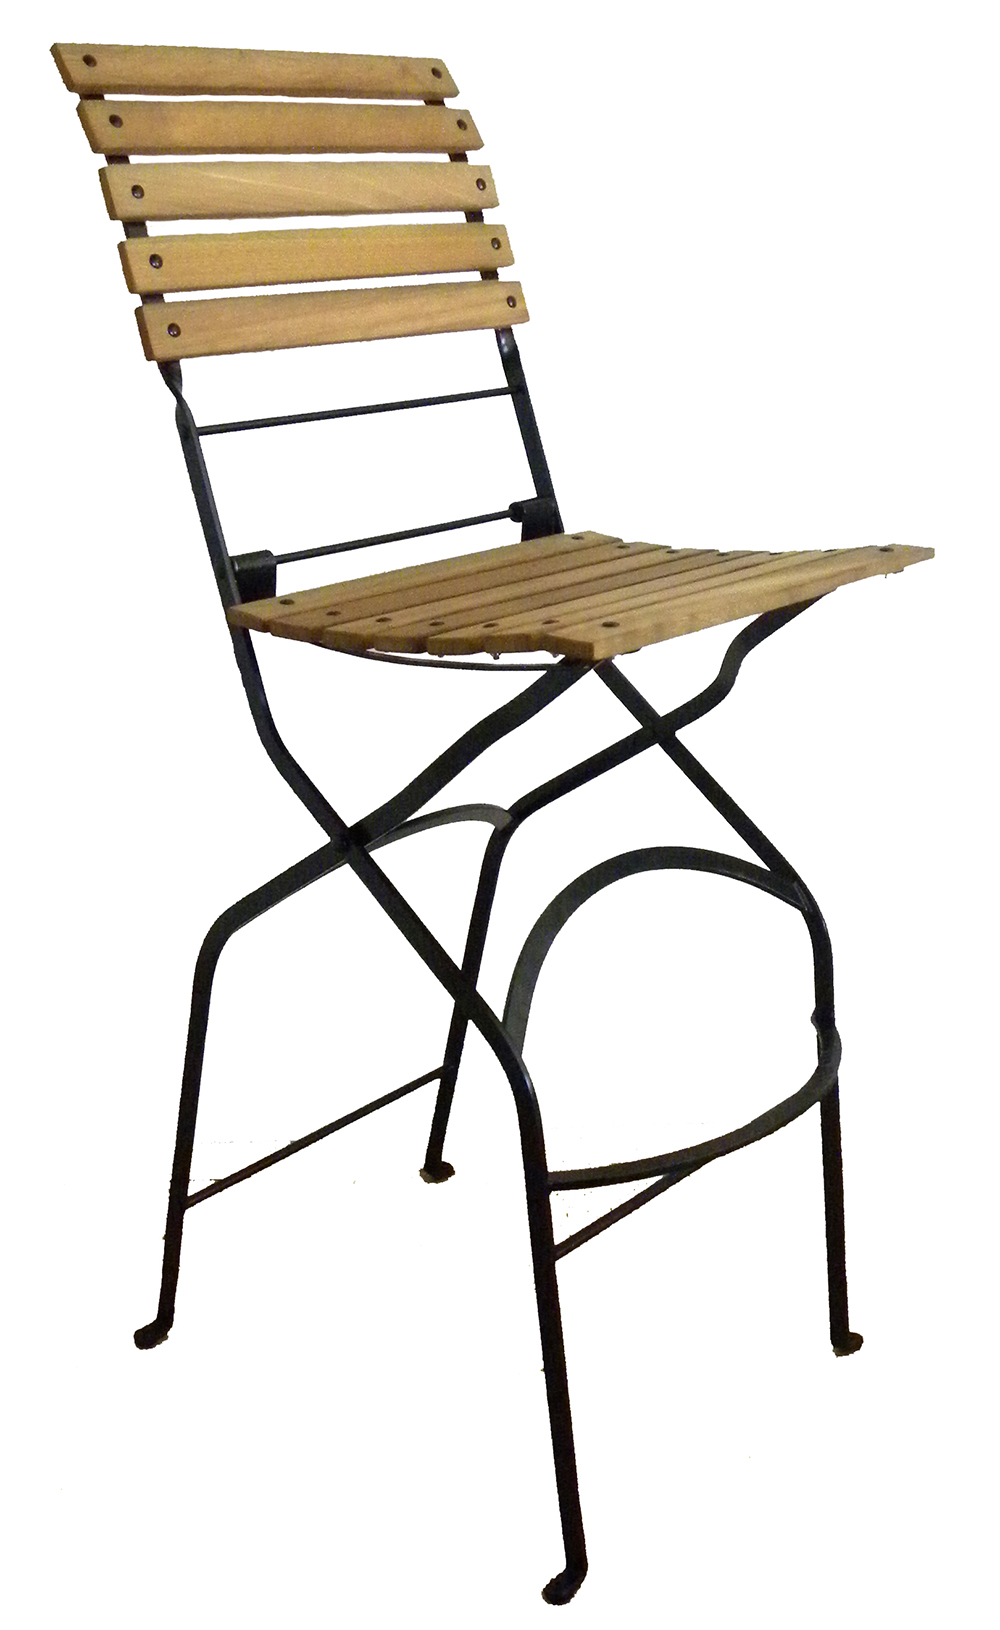 Kizze Furniture Design Products Wrought Iron Furnitures